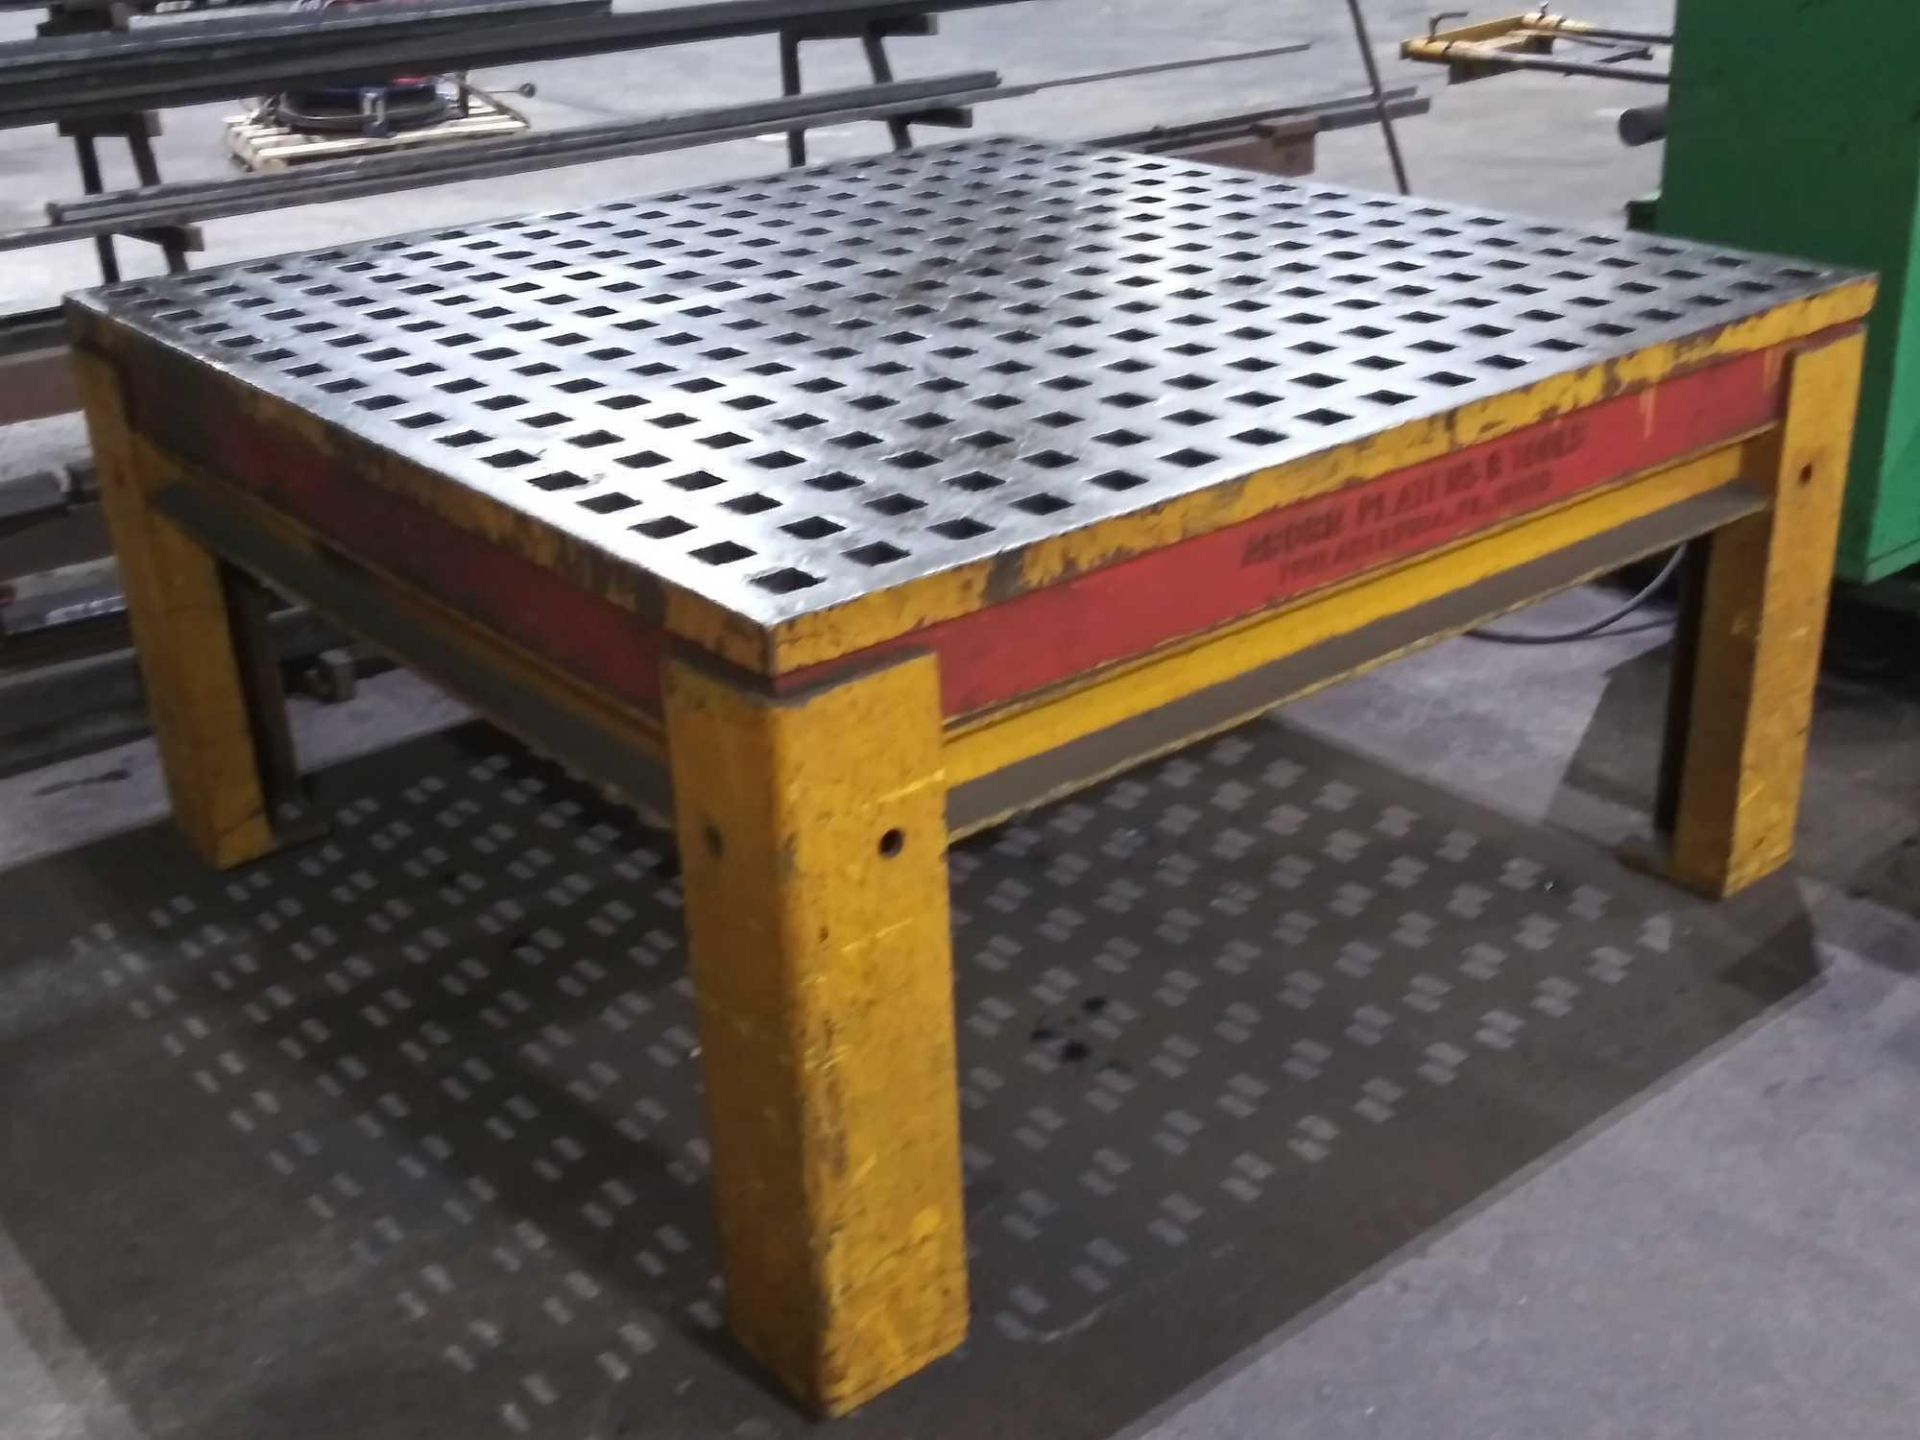 """Acorn Platens & Tools Welding Table, 60""""x60""""x30"""", square hole dimensions 1-3/4"""", inv1080 - Image 3 of 15"""